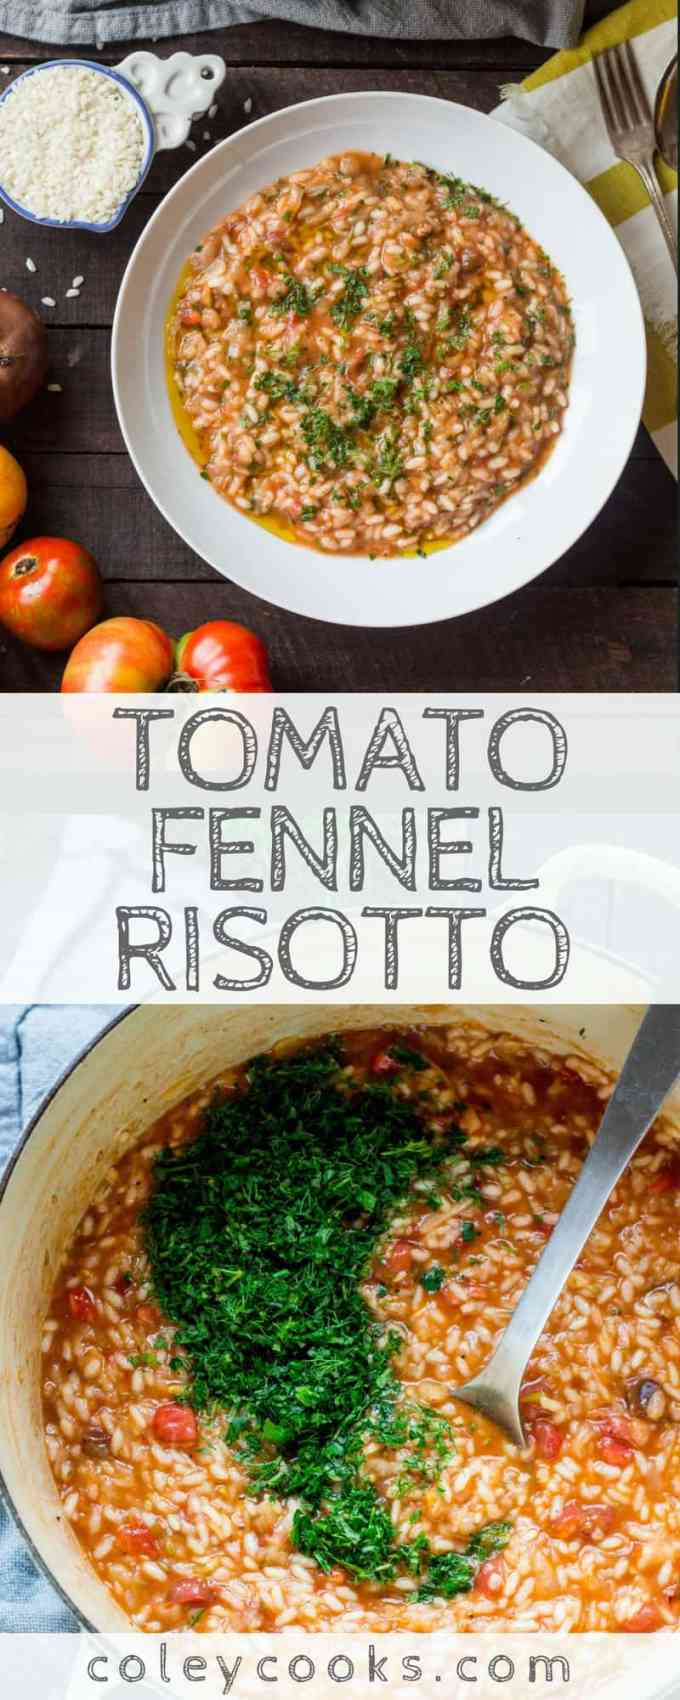 TOMATO FENNEL RISOTTO | Easy summer risotto recipe! Full of flavor, heirloom tomatoes, and fresh herbs. Healthy dinner recipe! #vegan #glutenfree #plantbased | ColeyCooks.com